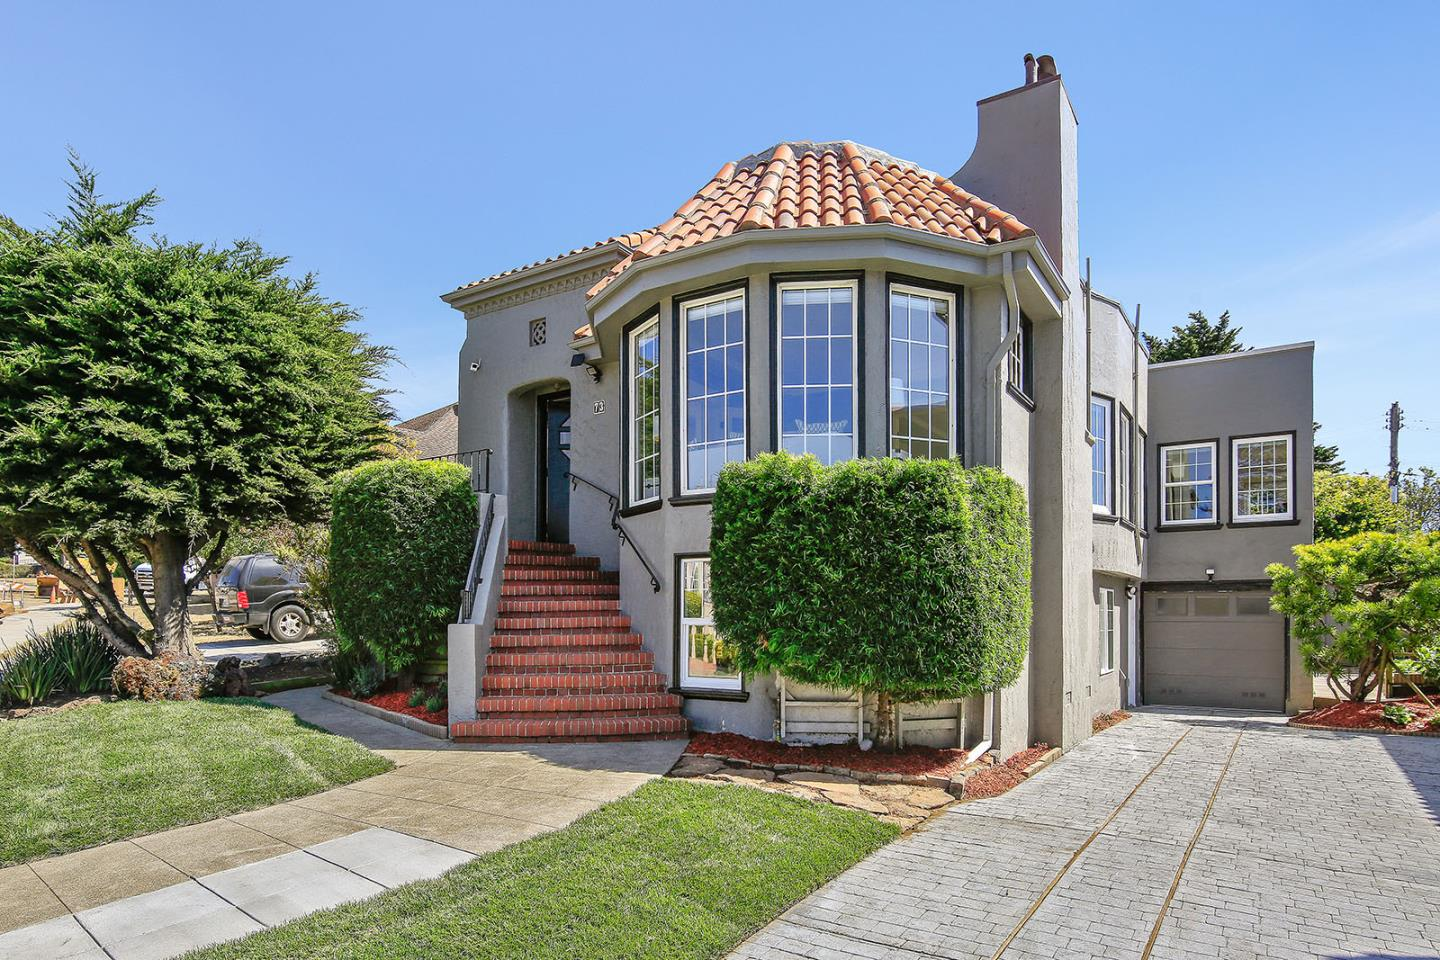 73 Estero Avenue, SAN FRANCISCO, CA 94127